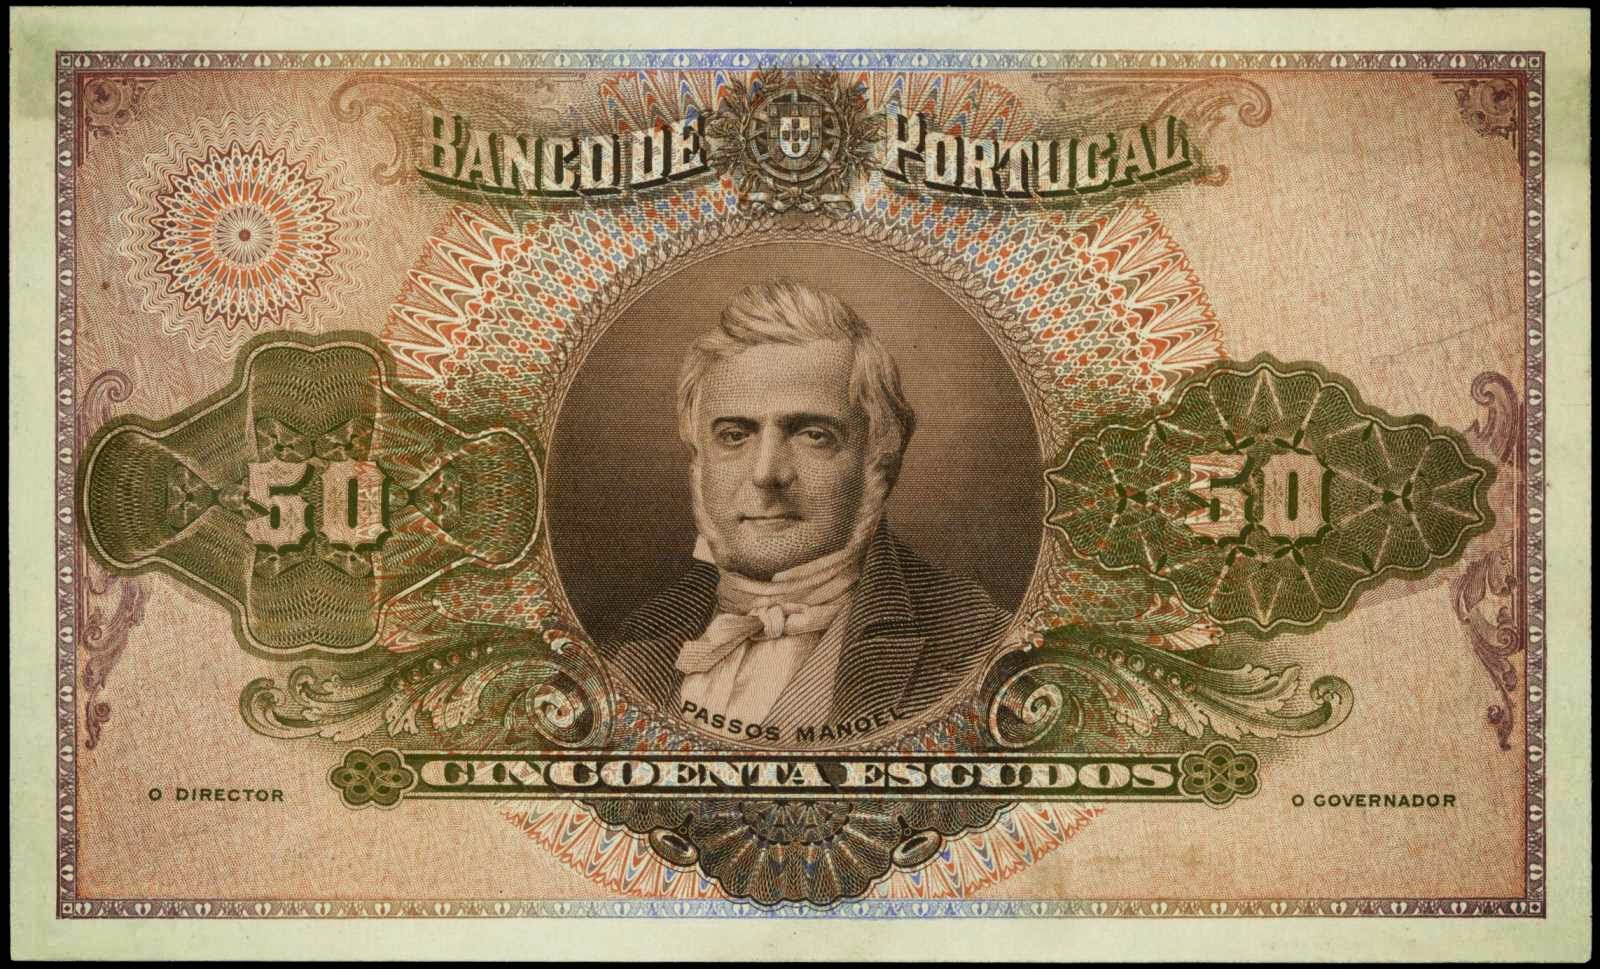 Portugal banknotes 50 Escudos note 1920